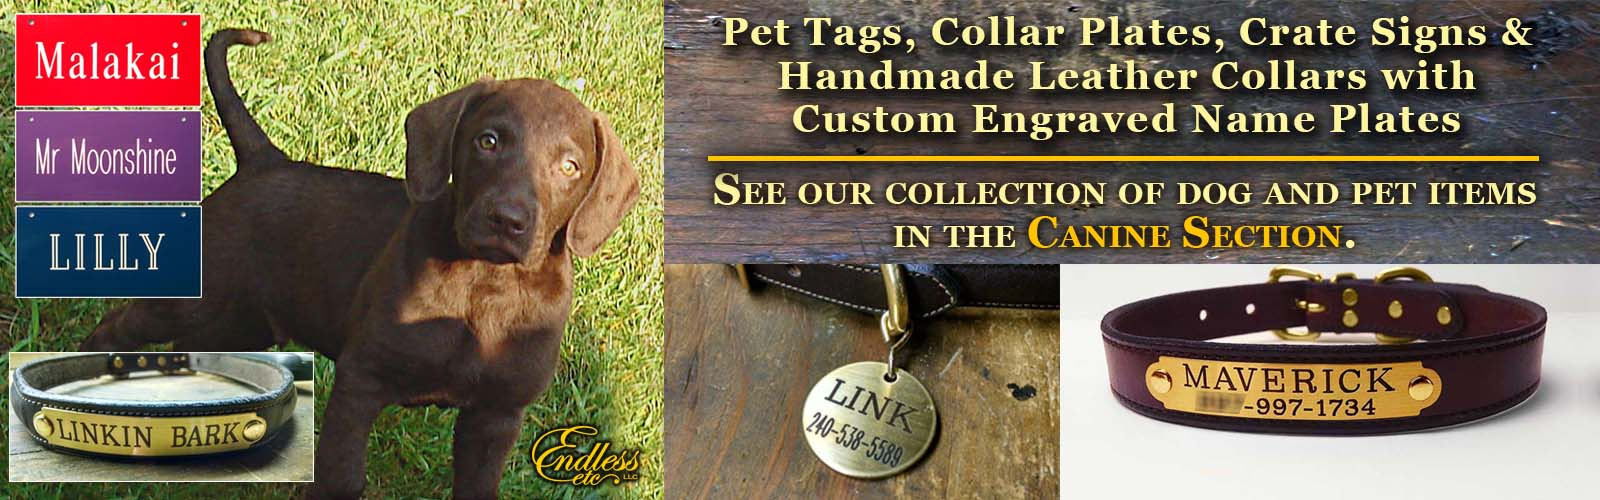 engraved collar and pet tags